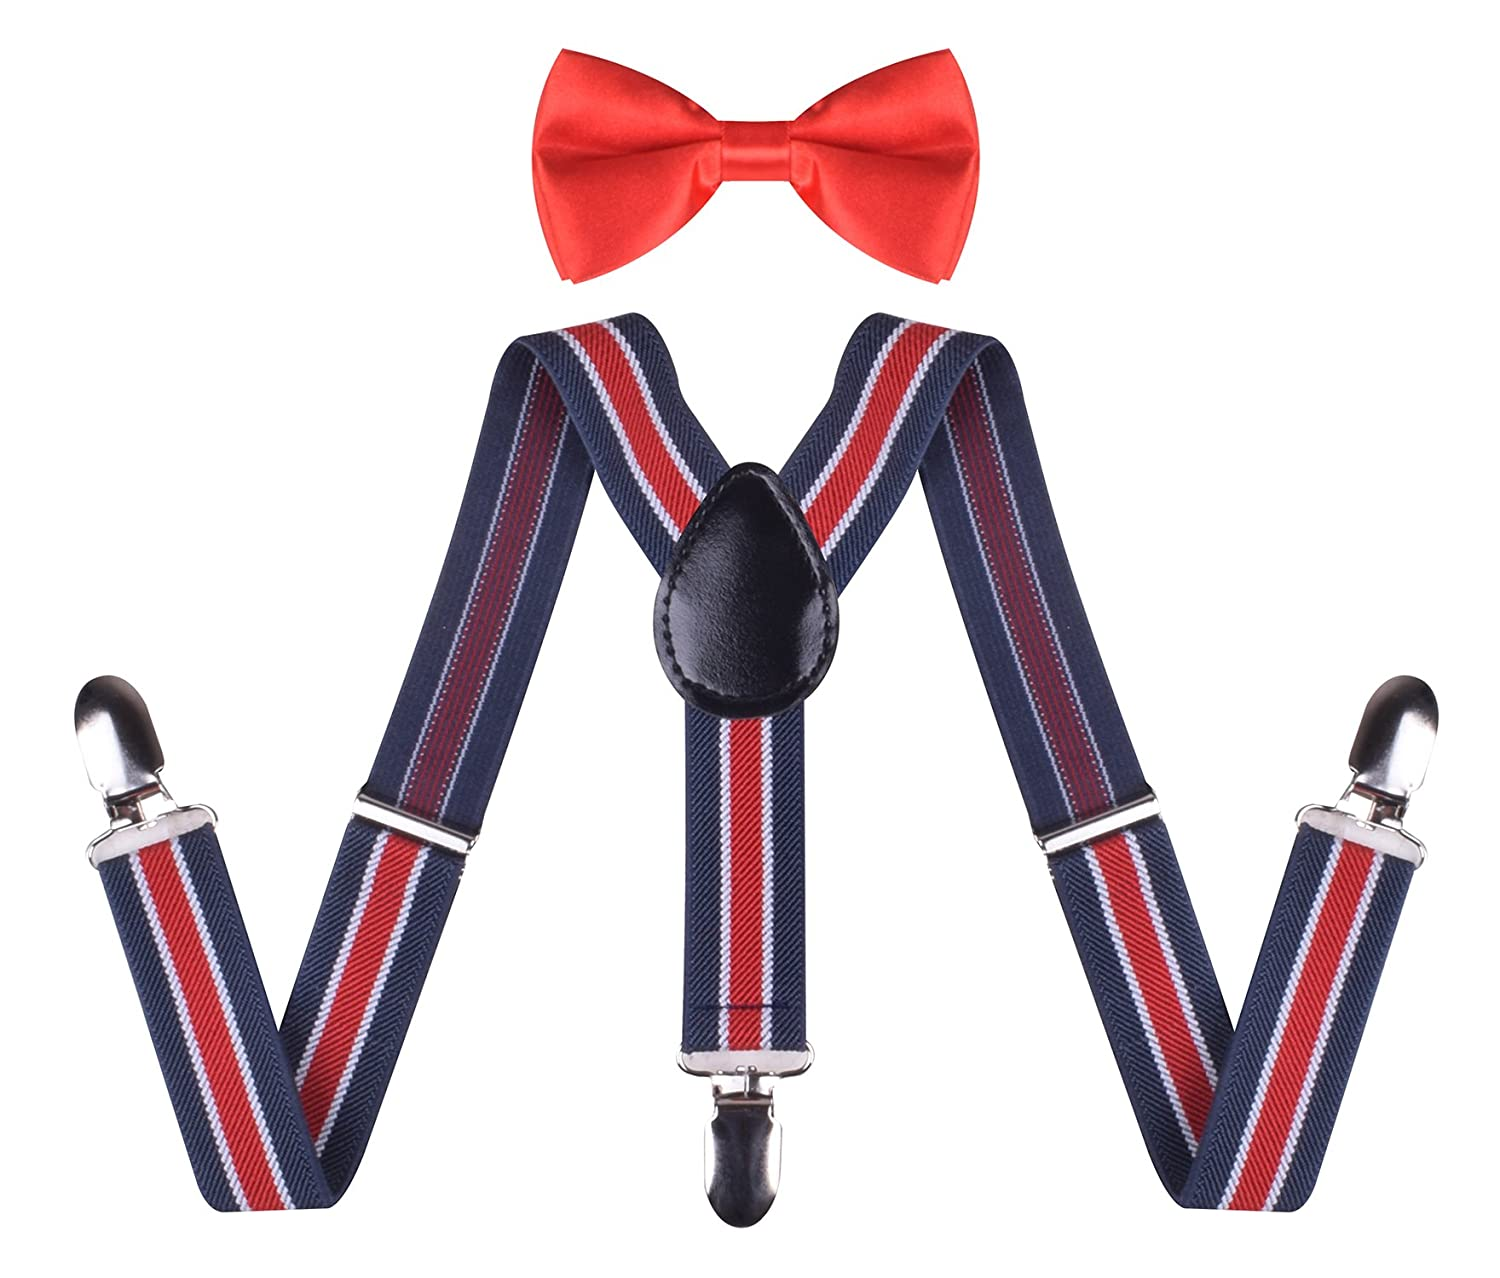 BODY STRENTH Kids Suspenders and Bow Tie Set Adjustable KHGEIIEGH20002